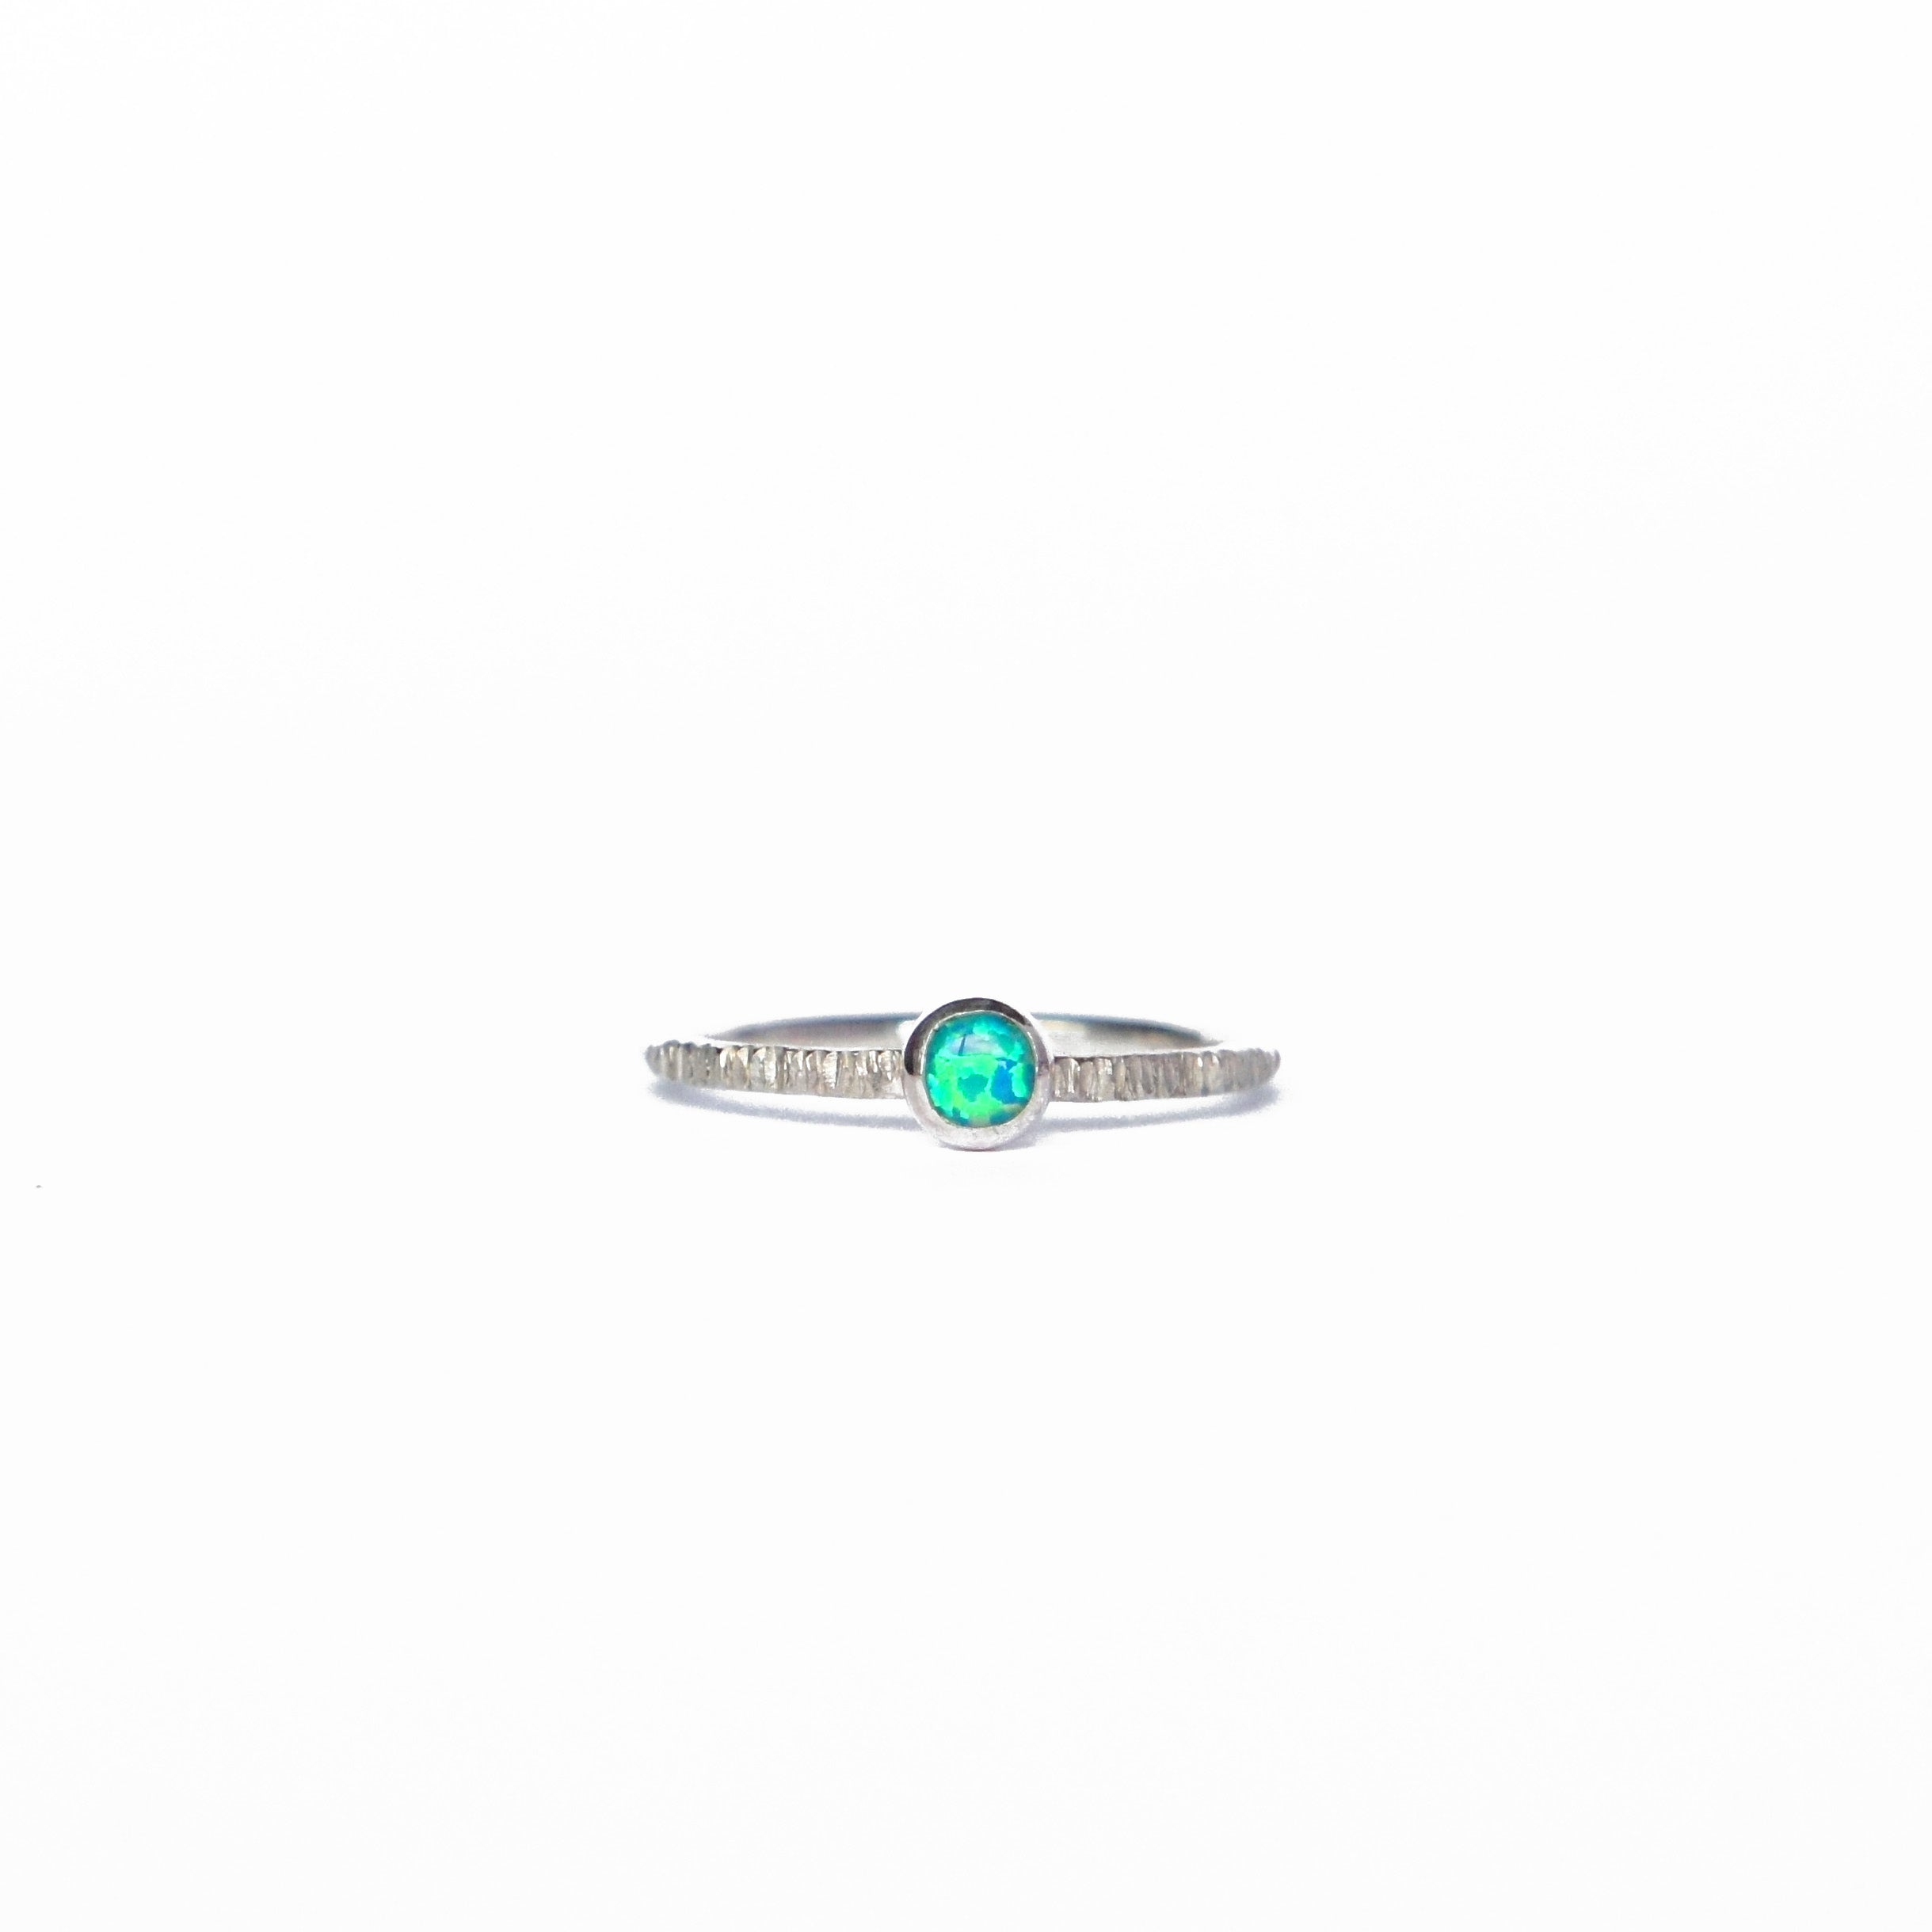 Emily Eliza Arlotte Handcrafted Fine Jewellery - Sterling Silver Sea Green Opal Dainty Galaxy Ring